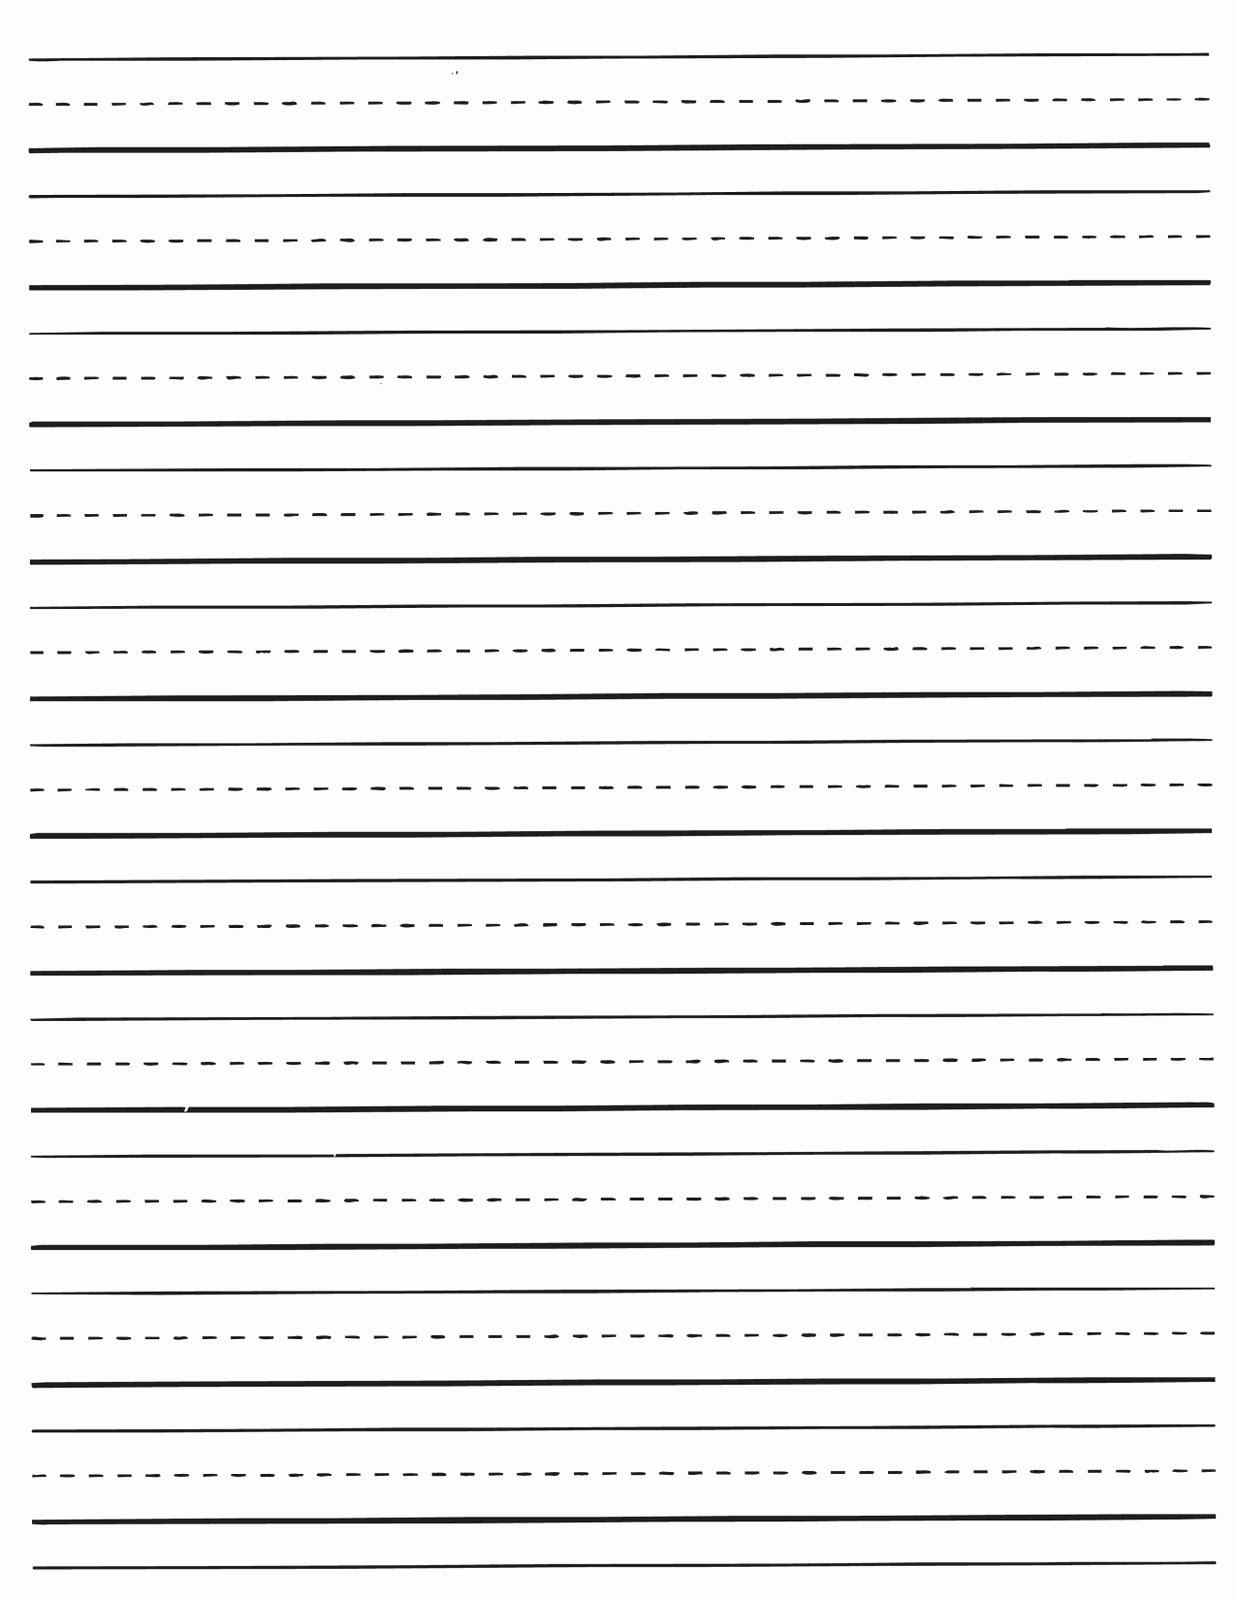 Lined Writing Paper Template Fresh Printable Dotted Lined Paper Printable Pages